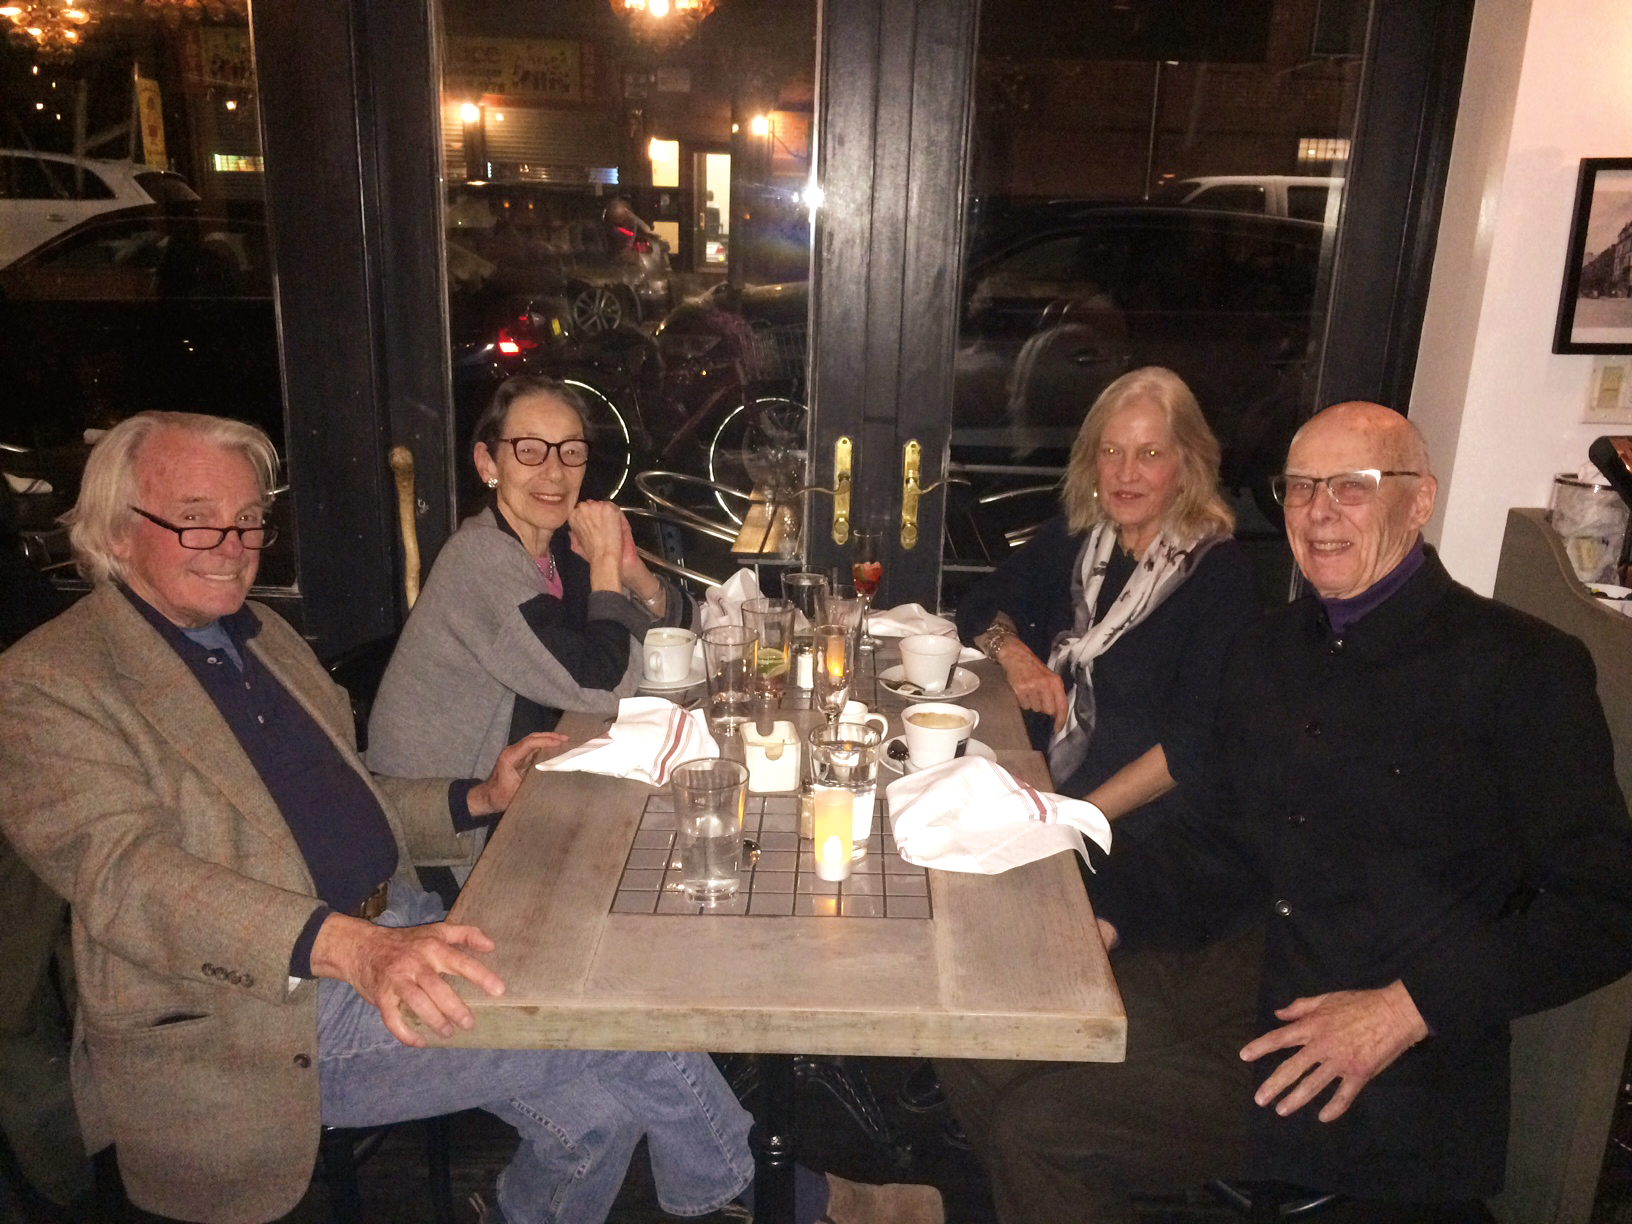 (L. to r.) Nelson Aldrich '53, Didette Hammond, Dee Aldrich, and Jim Hammond '53 in New York City.